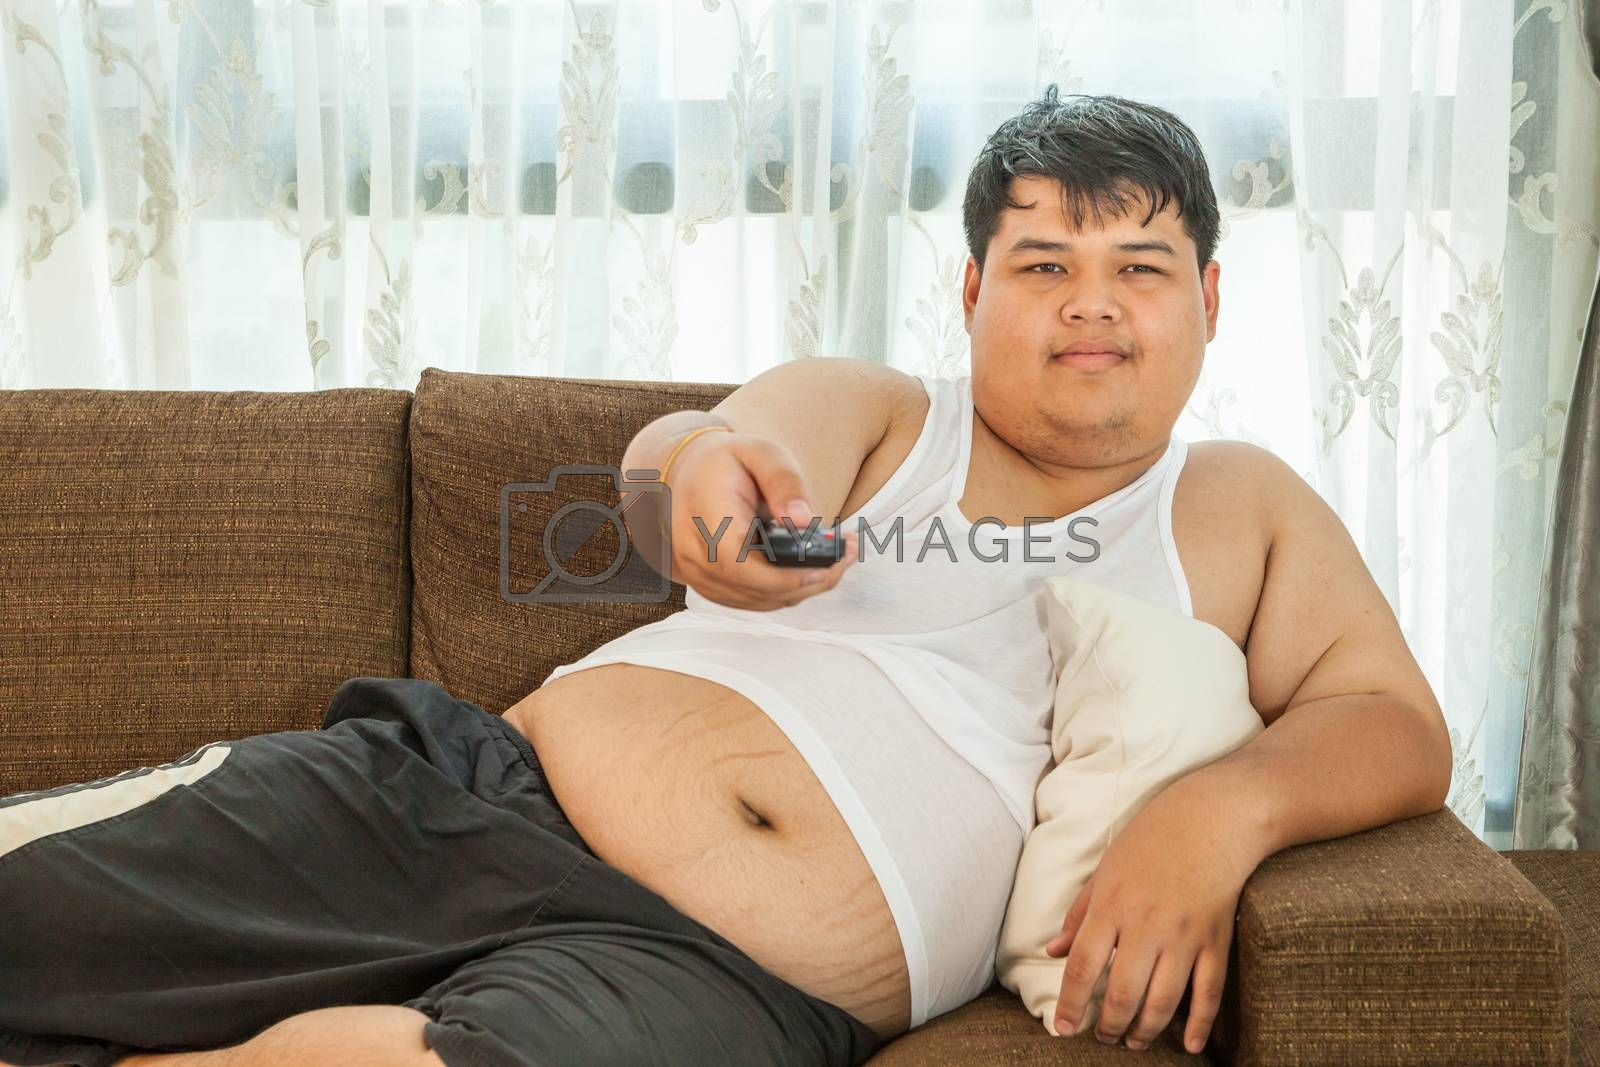 Overweight guy sitting on the couch to watch some TV